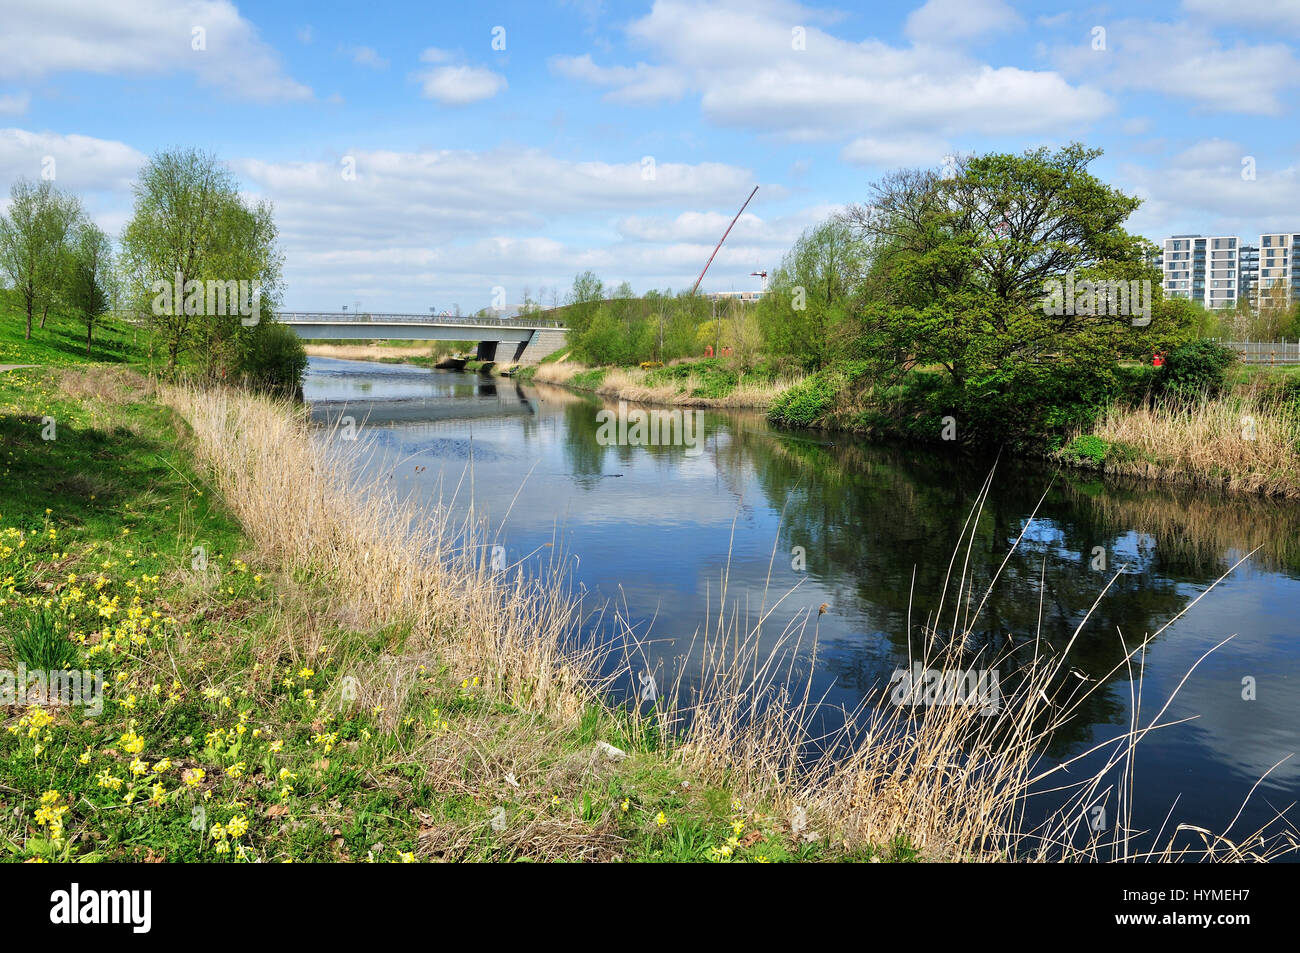 River Lea at the Queen Elizabeth Olympic Park, Stratford, East London UK - Stock Image